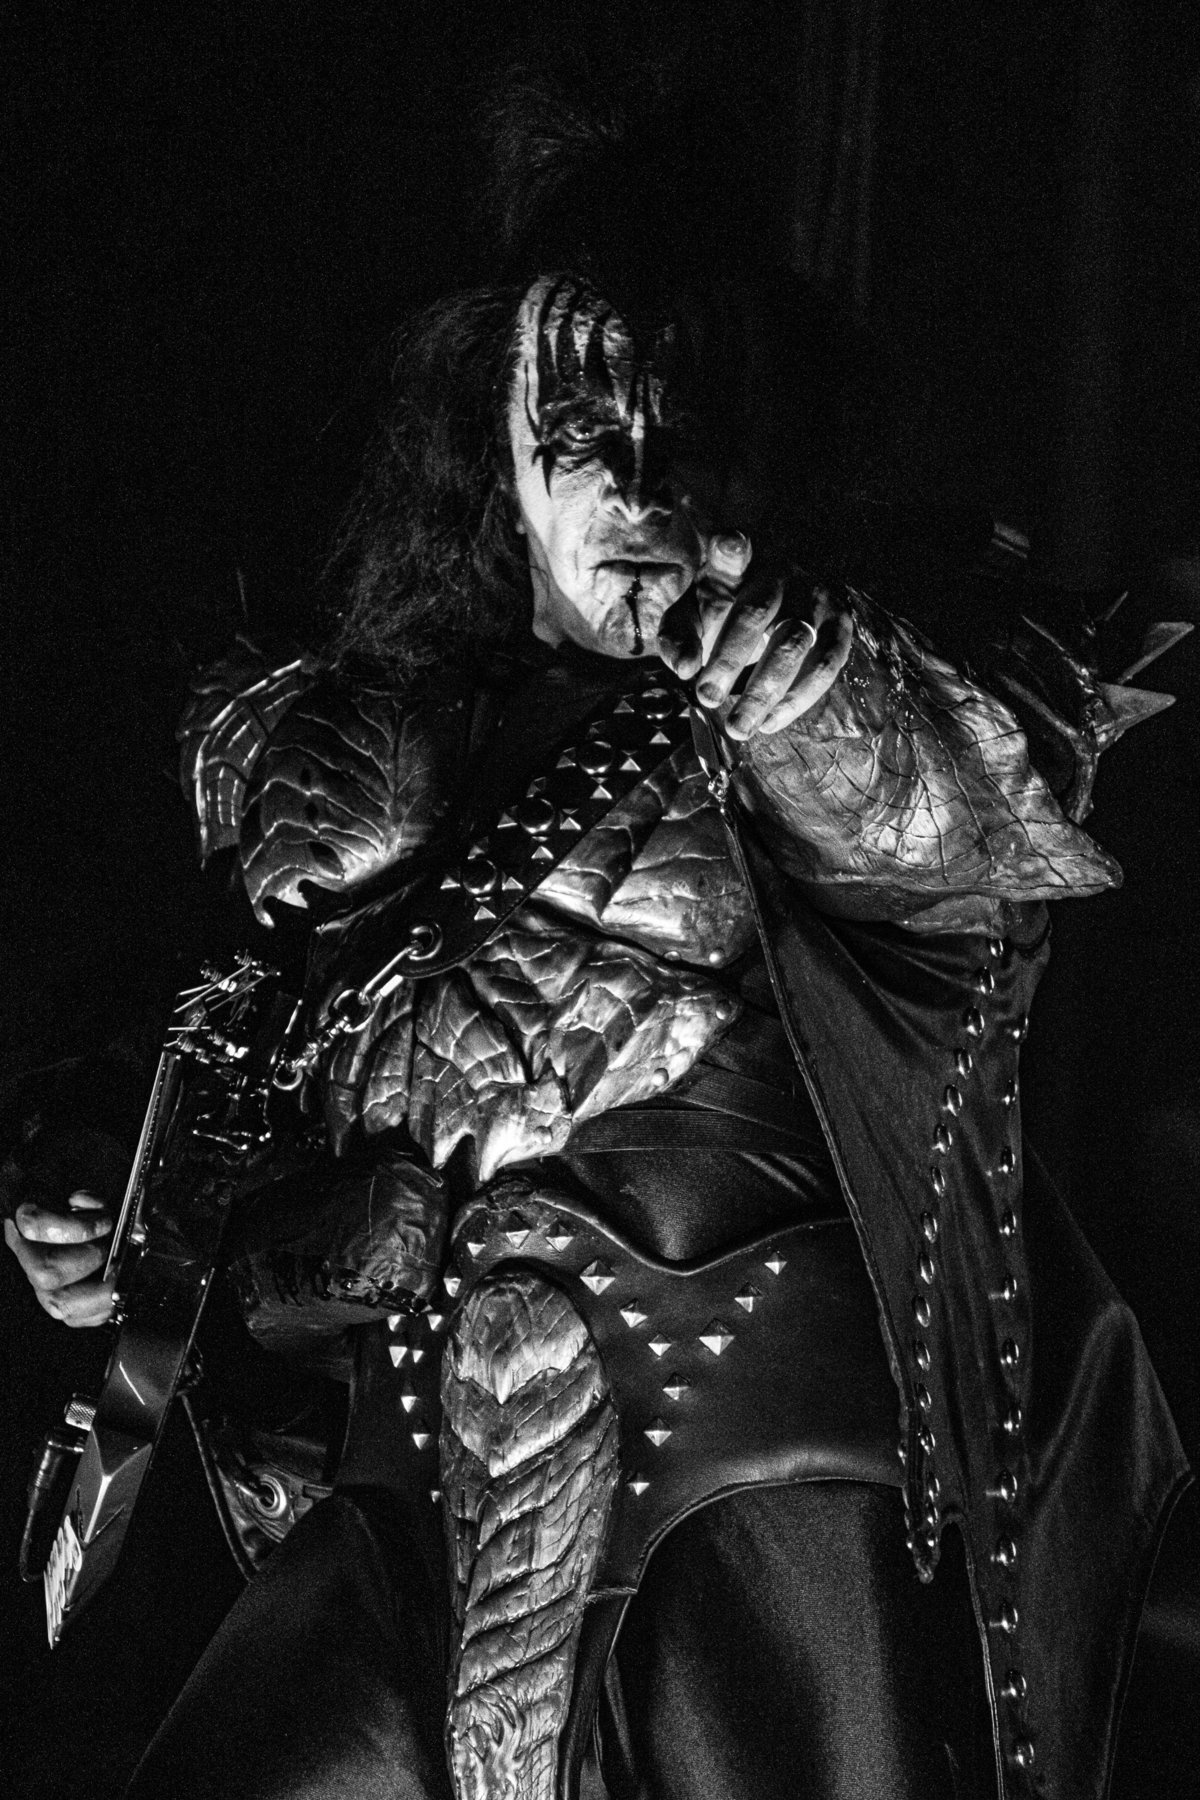 Gene Simmons of Kiss in concert